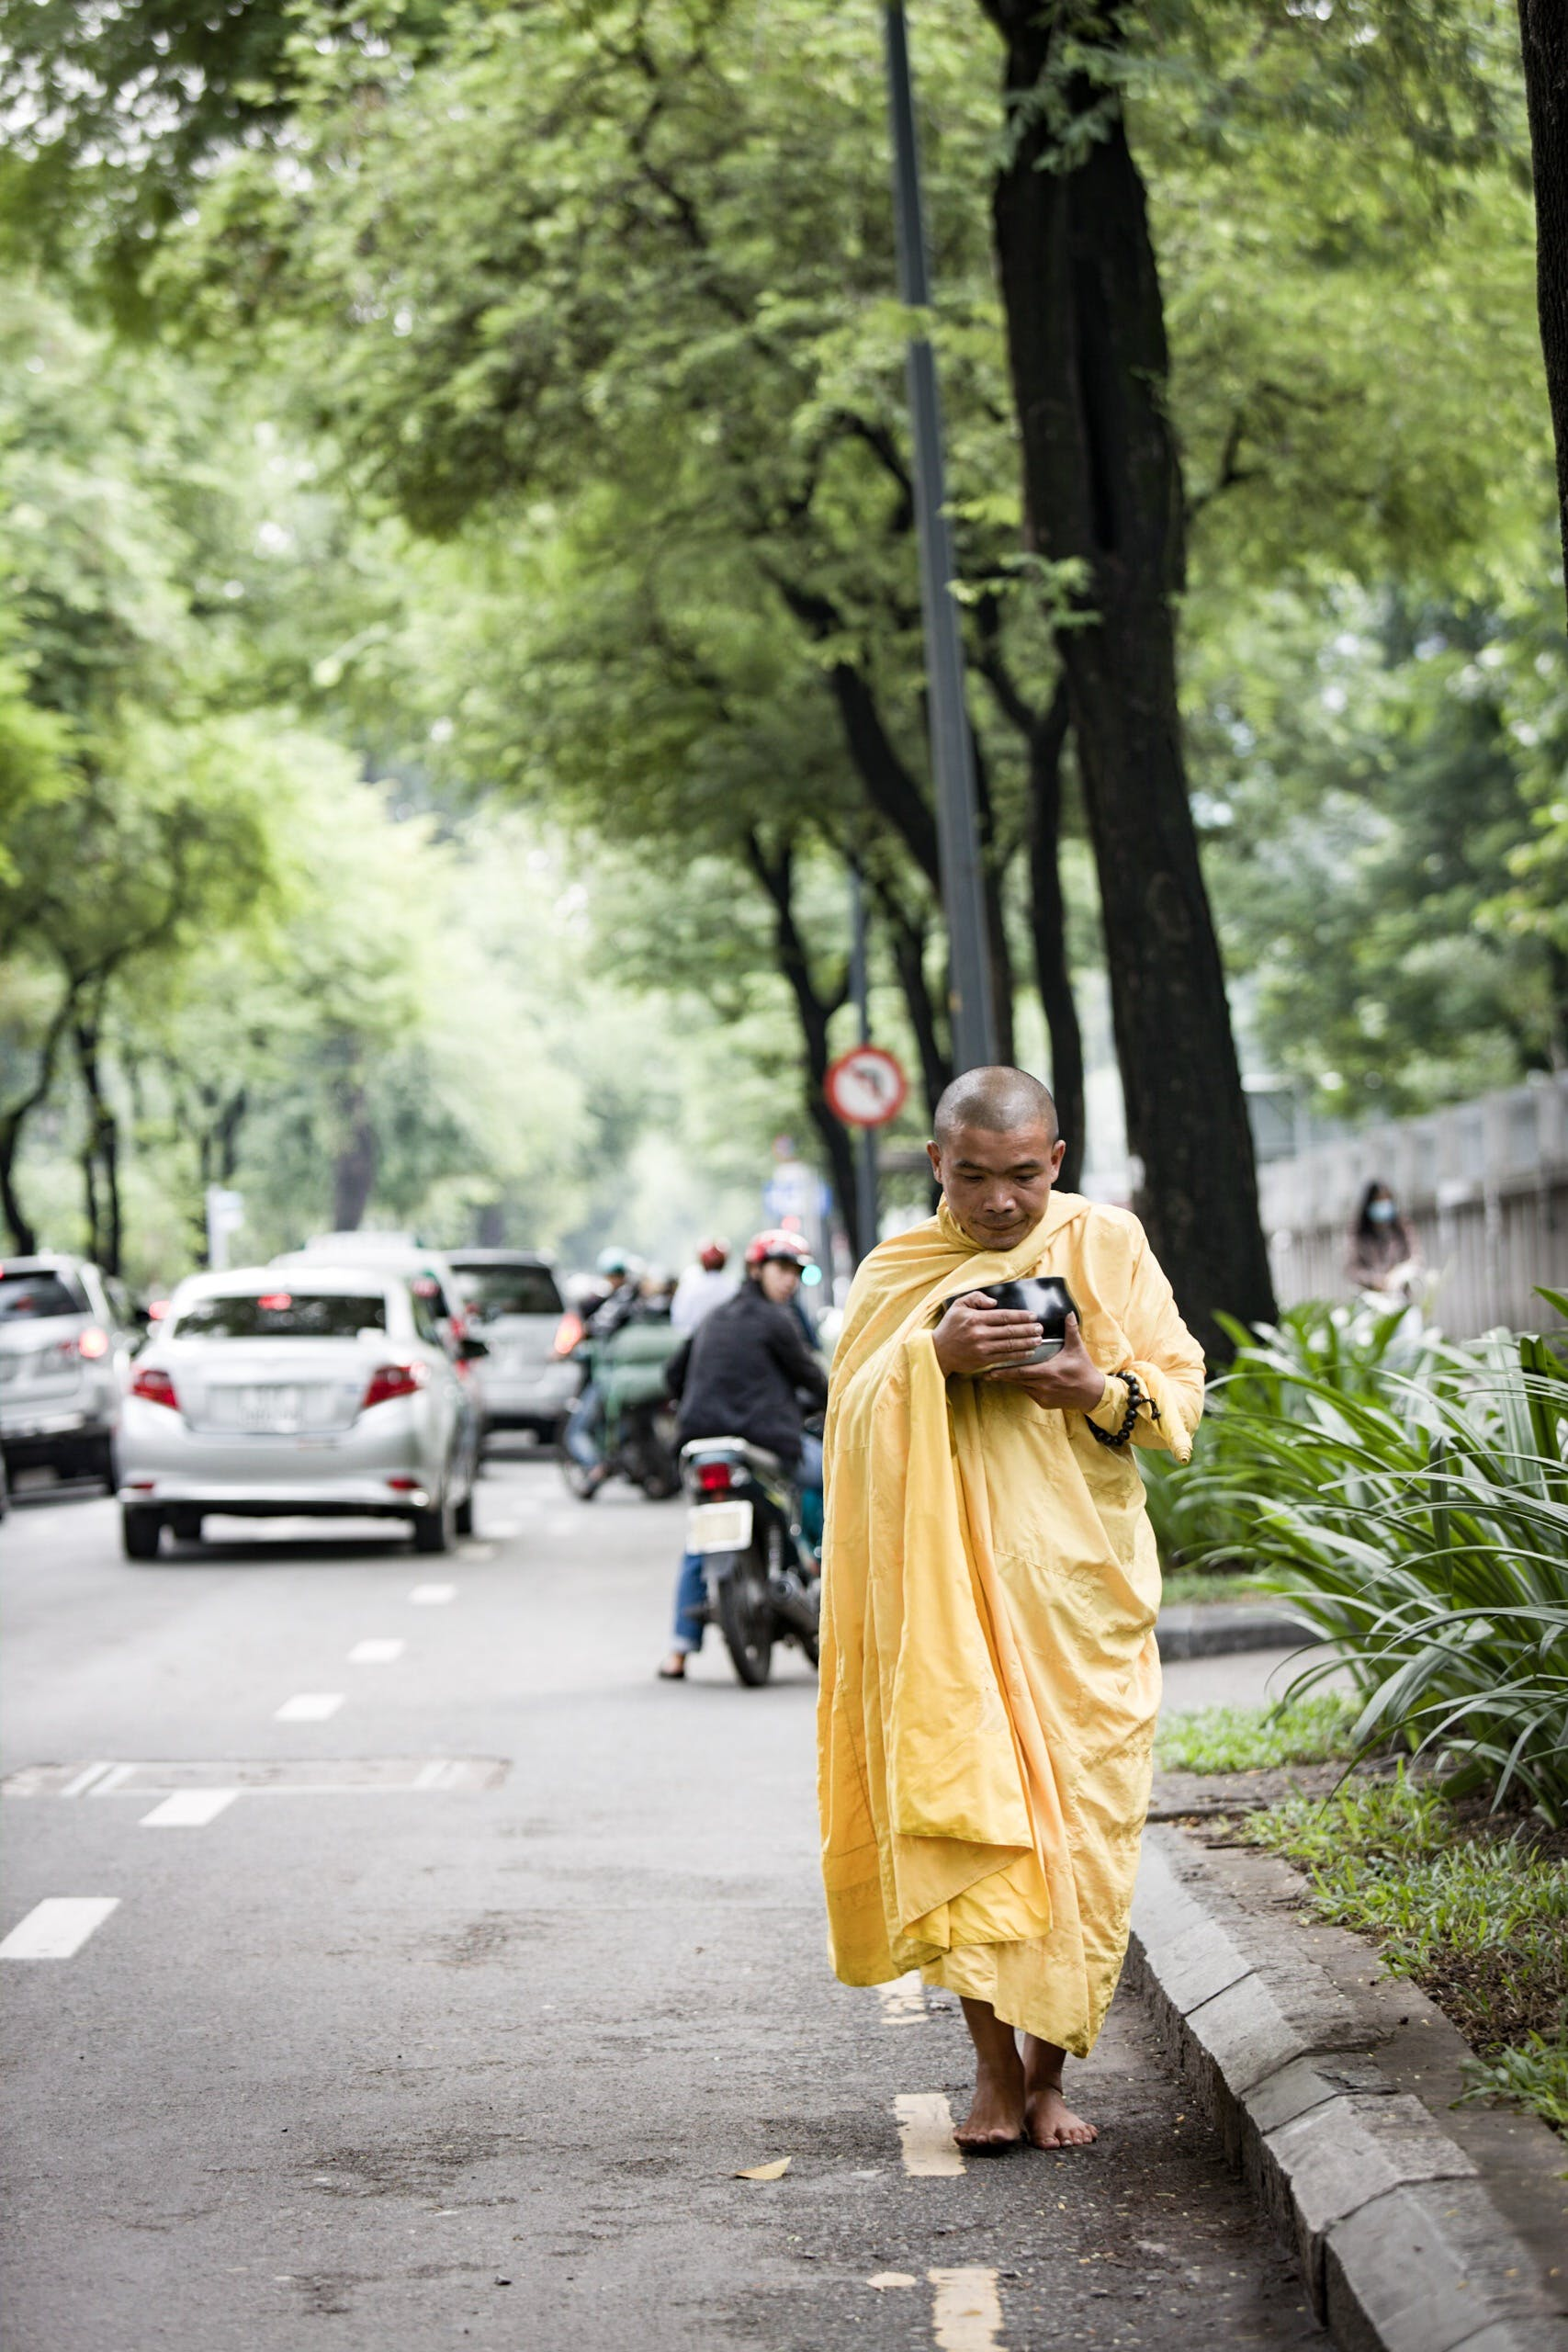 Monk Holding Bowl While Walking on Street